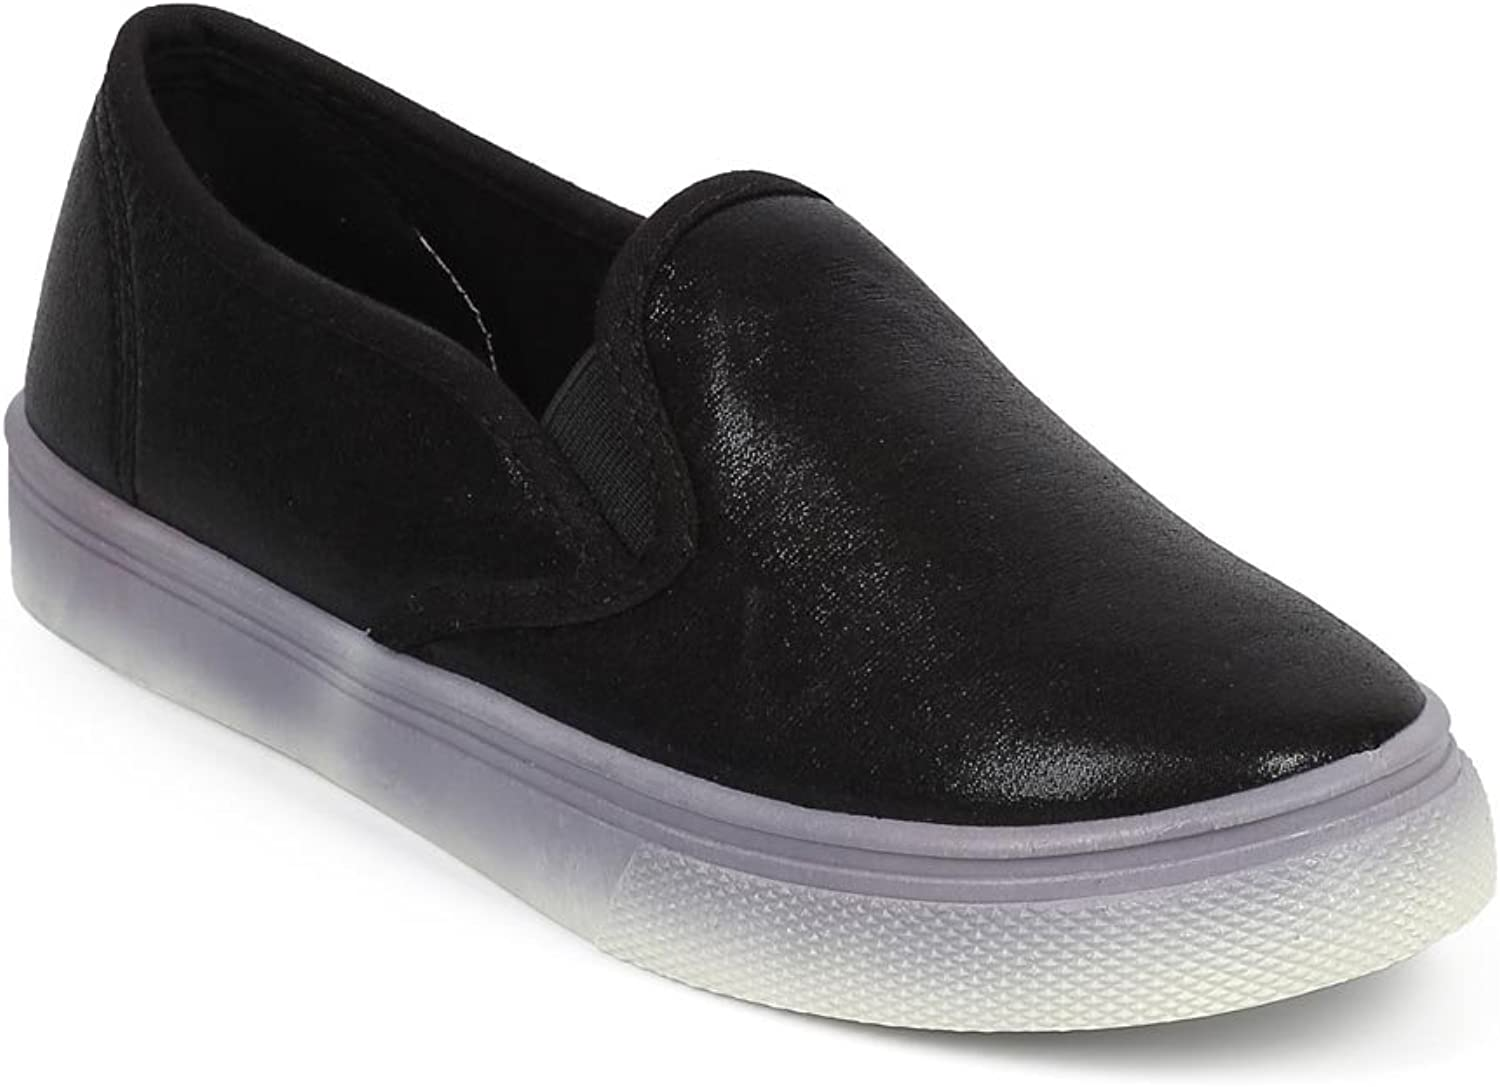 Wild Diva DF42 Women Metallic Shimmer Round Toe Fashion Slip On Sneaker - Black